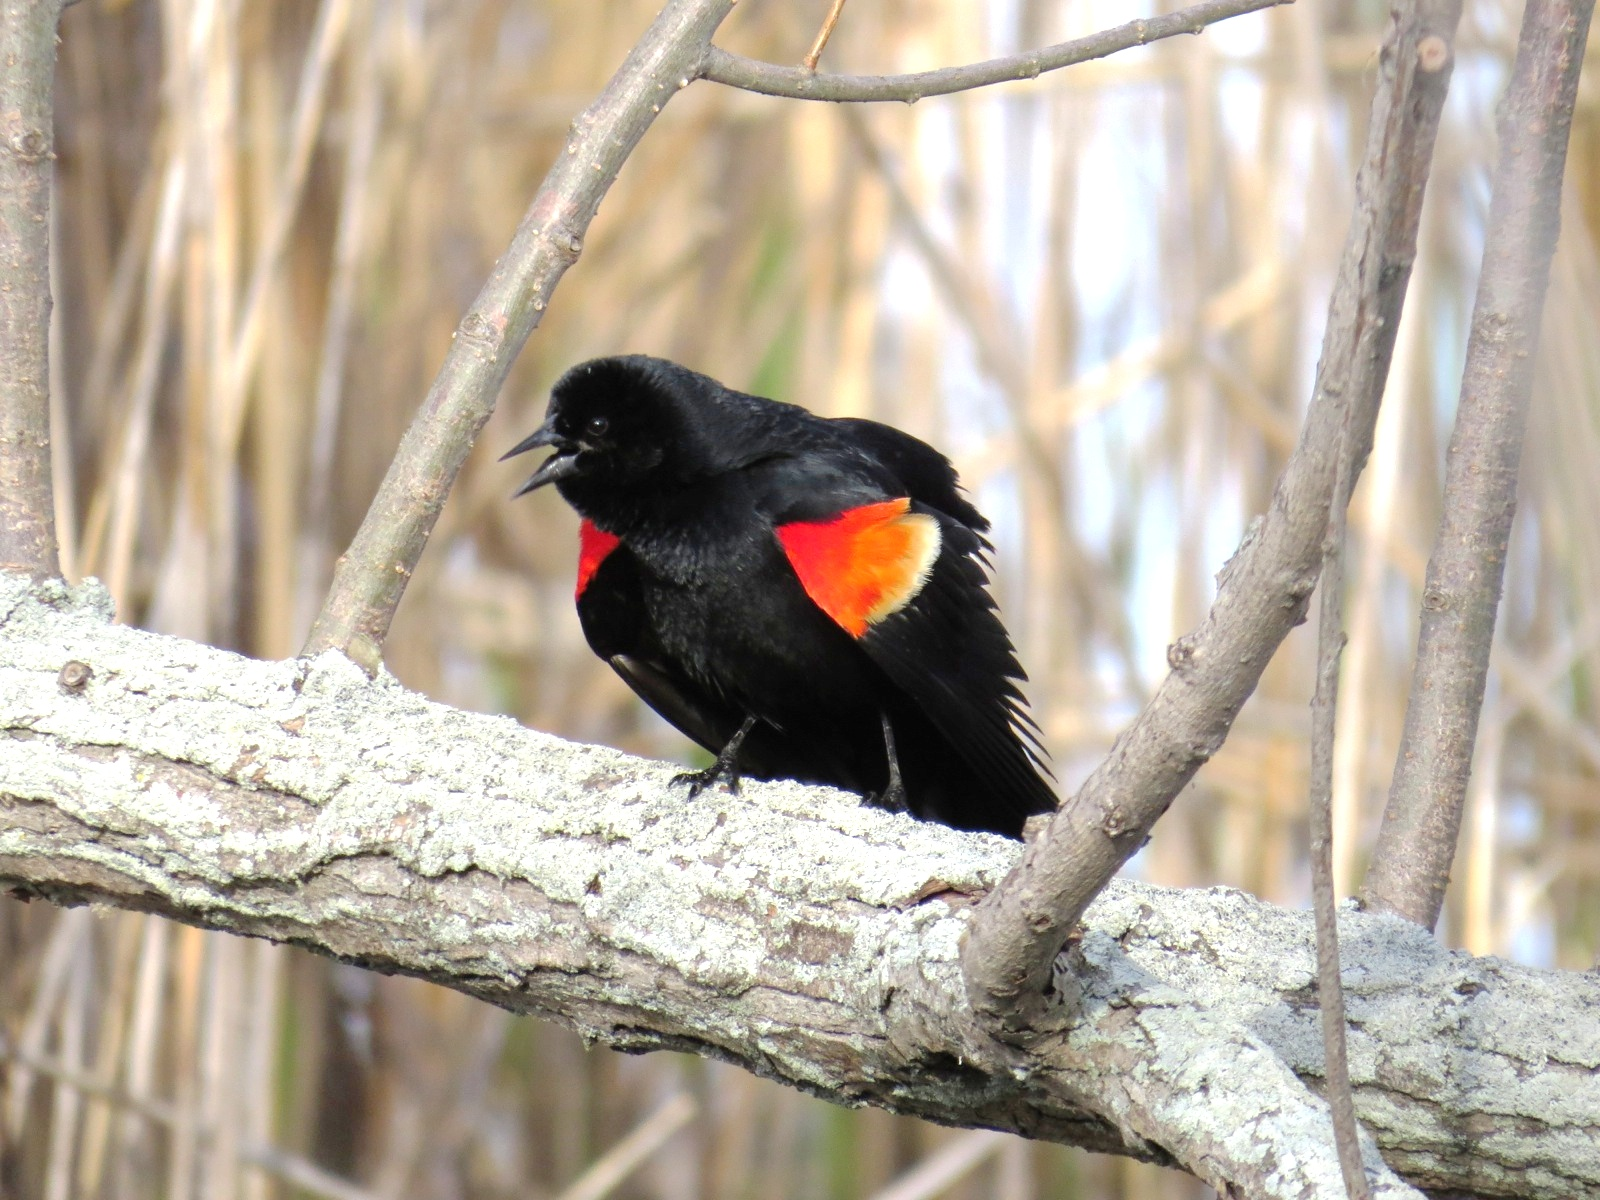 The Red-winged Blackbird from the front, the way this display is intended to be viewed, the intense red of the shoulders is set off against very deep black shadows of the body and underwing.